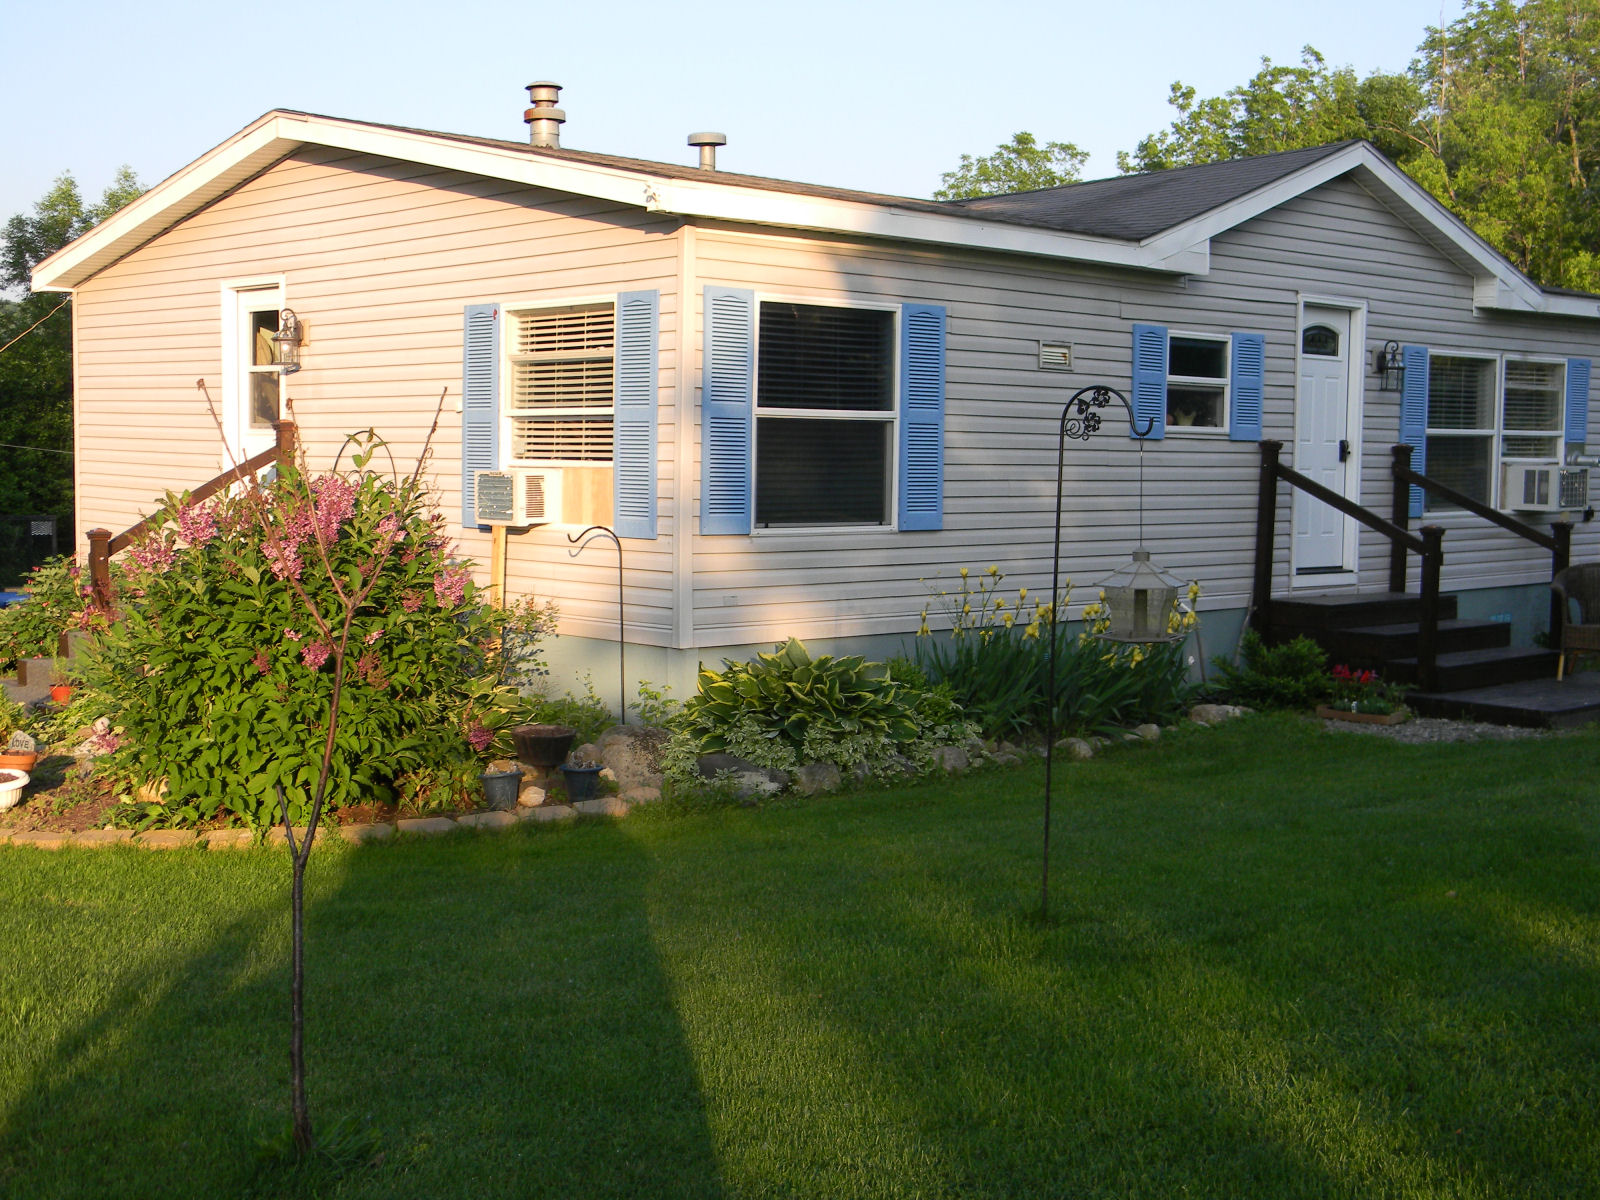 Ideas For Landscaping Around Your House : Landscaping ideas for mobile homes manufactured